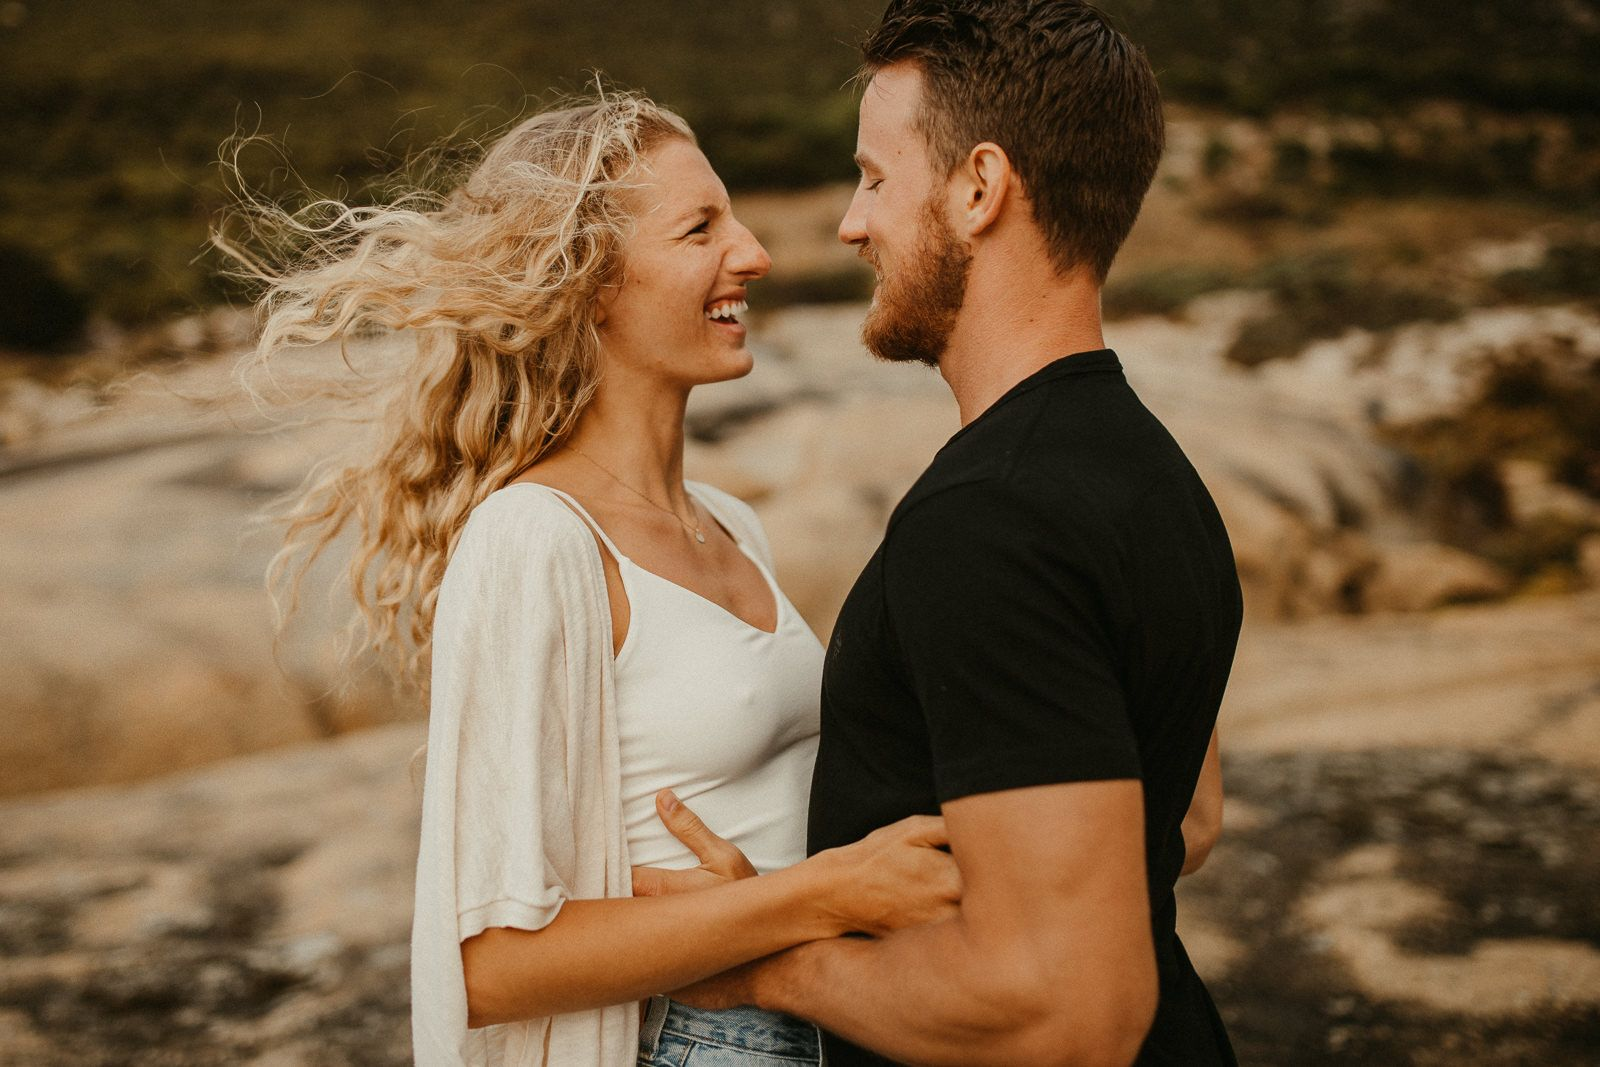 Rainy Coupleshoot At Sandy Bay By Patrick Pannenberg Beloved Stories Https Beloved Stor Engagement Photo Inspiration Instagram Men Engagement Photo Outfits